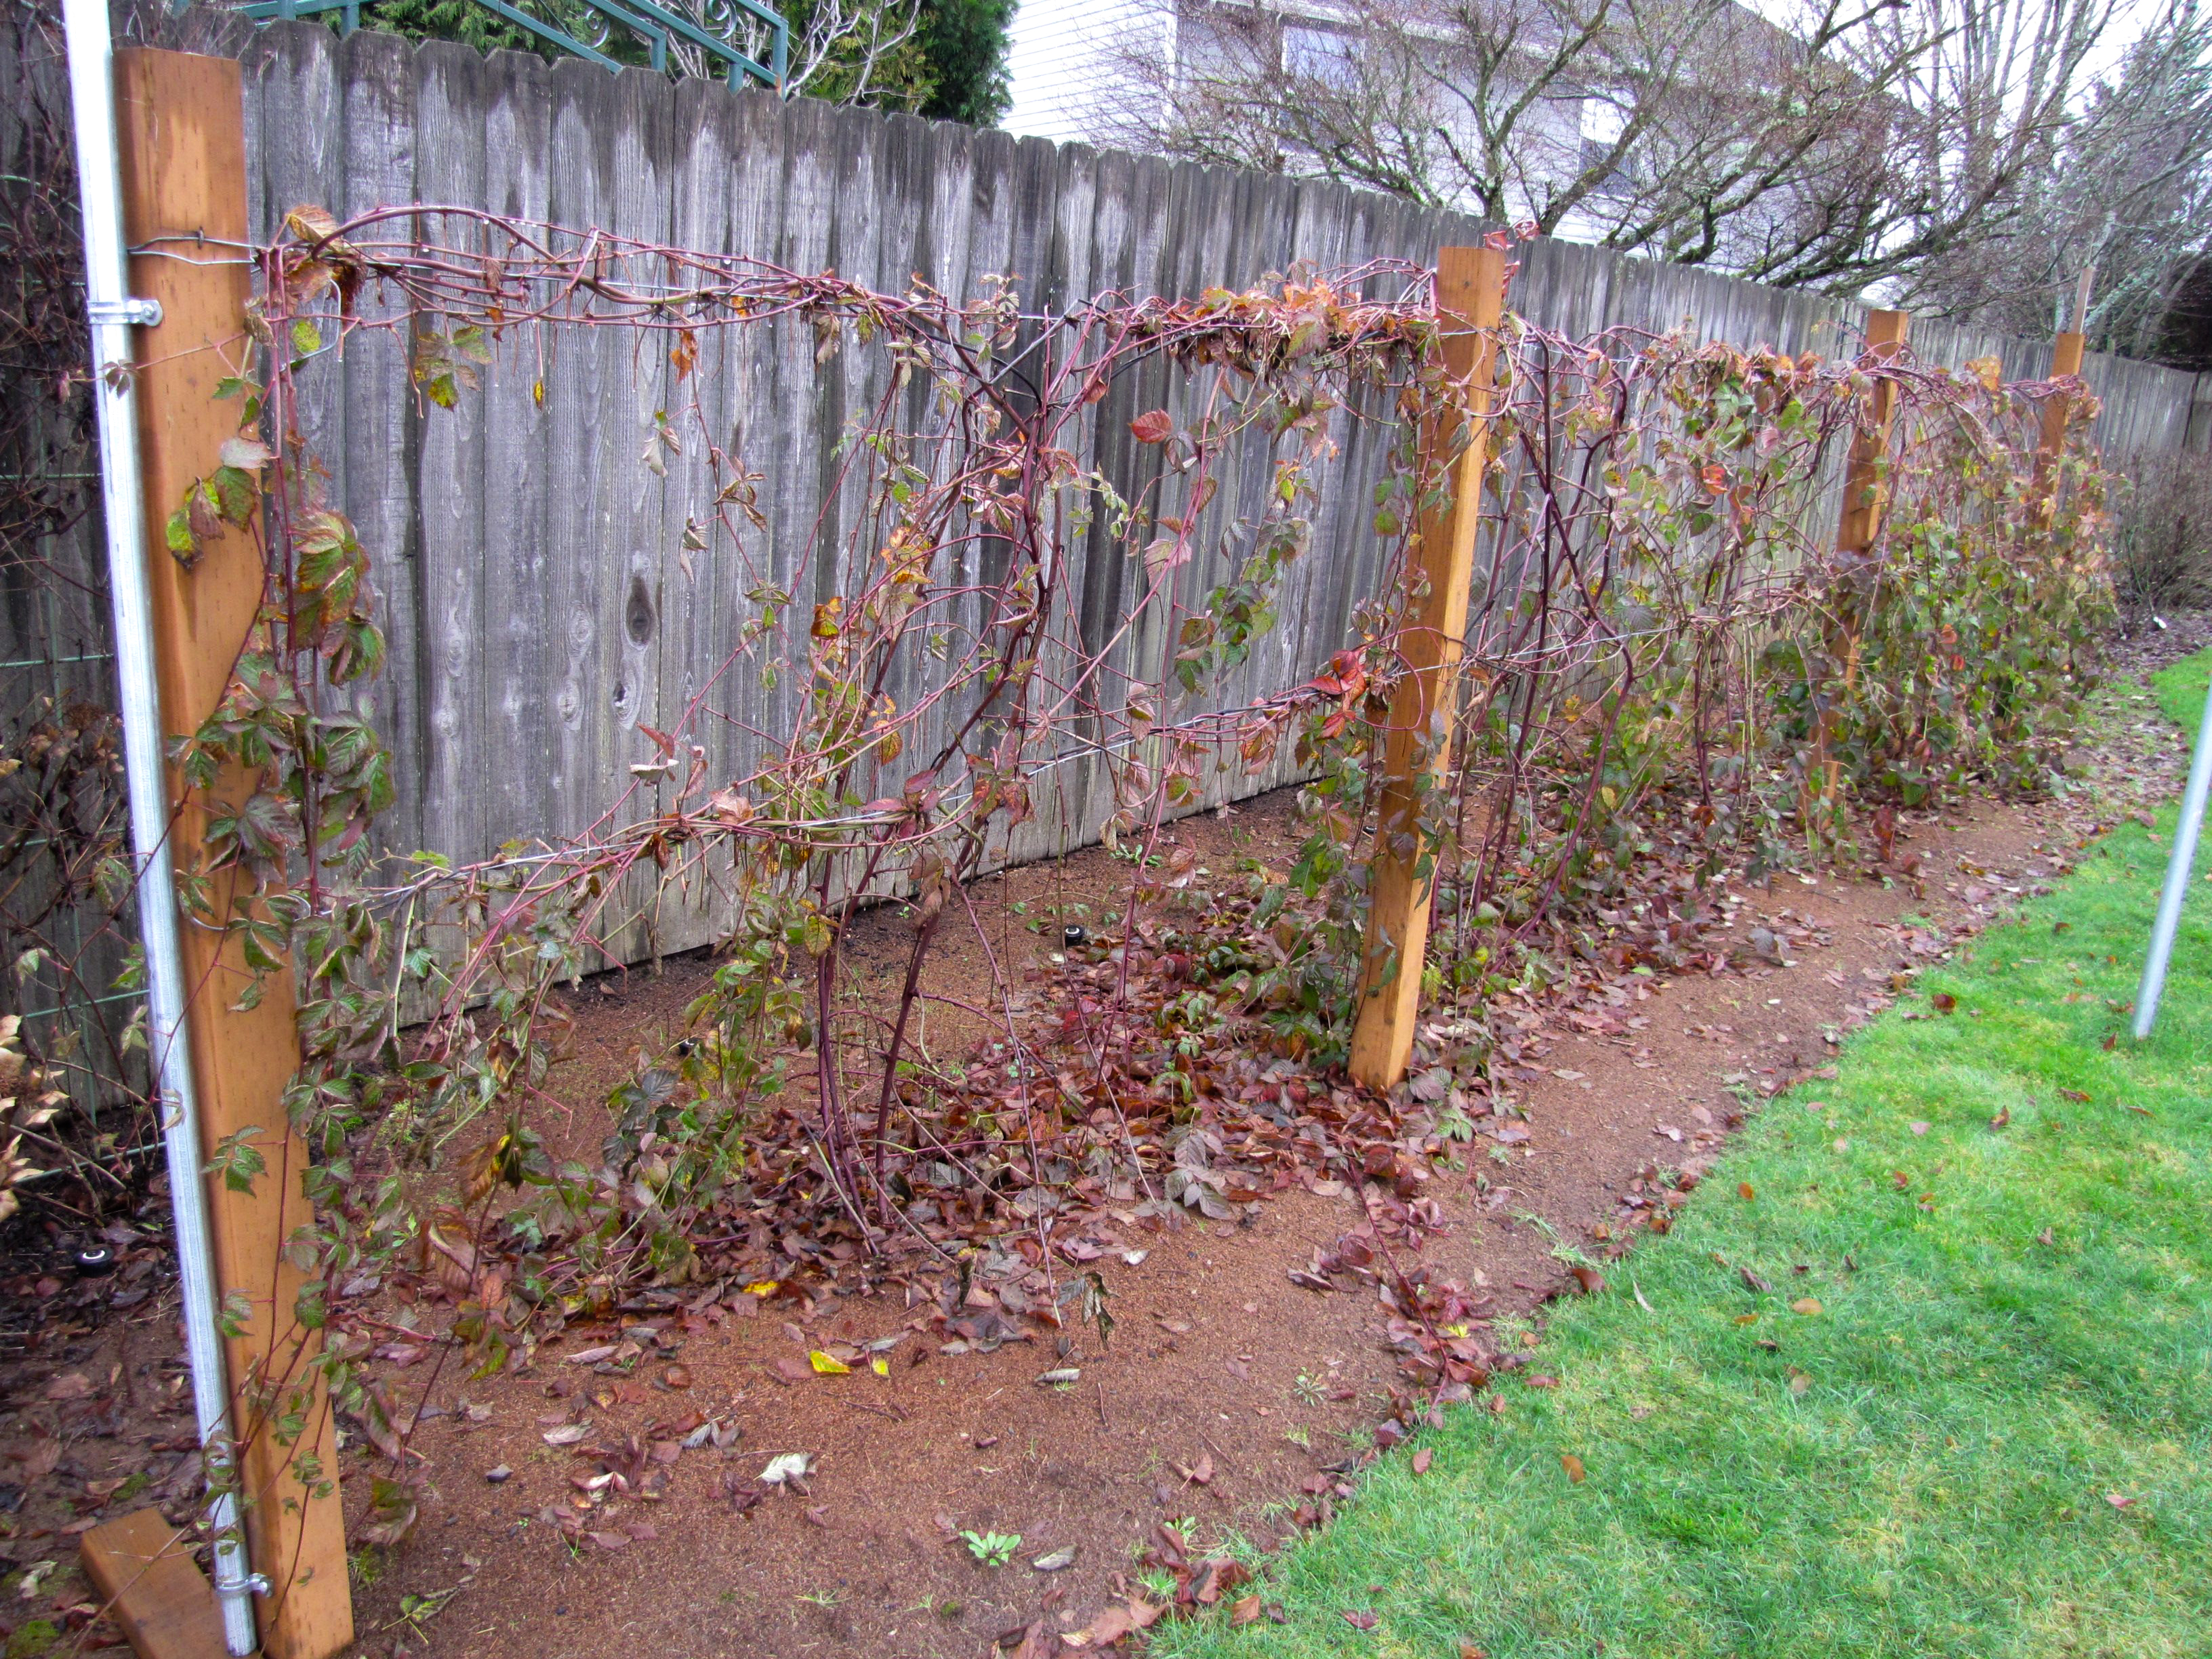 'Boysen' blackberry trained on fence